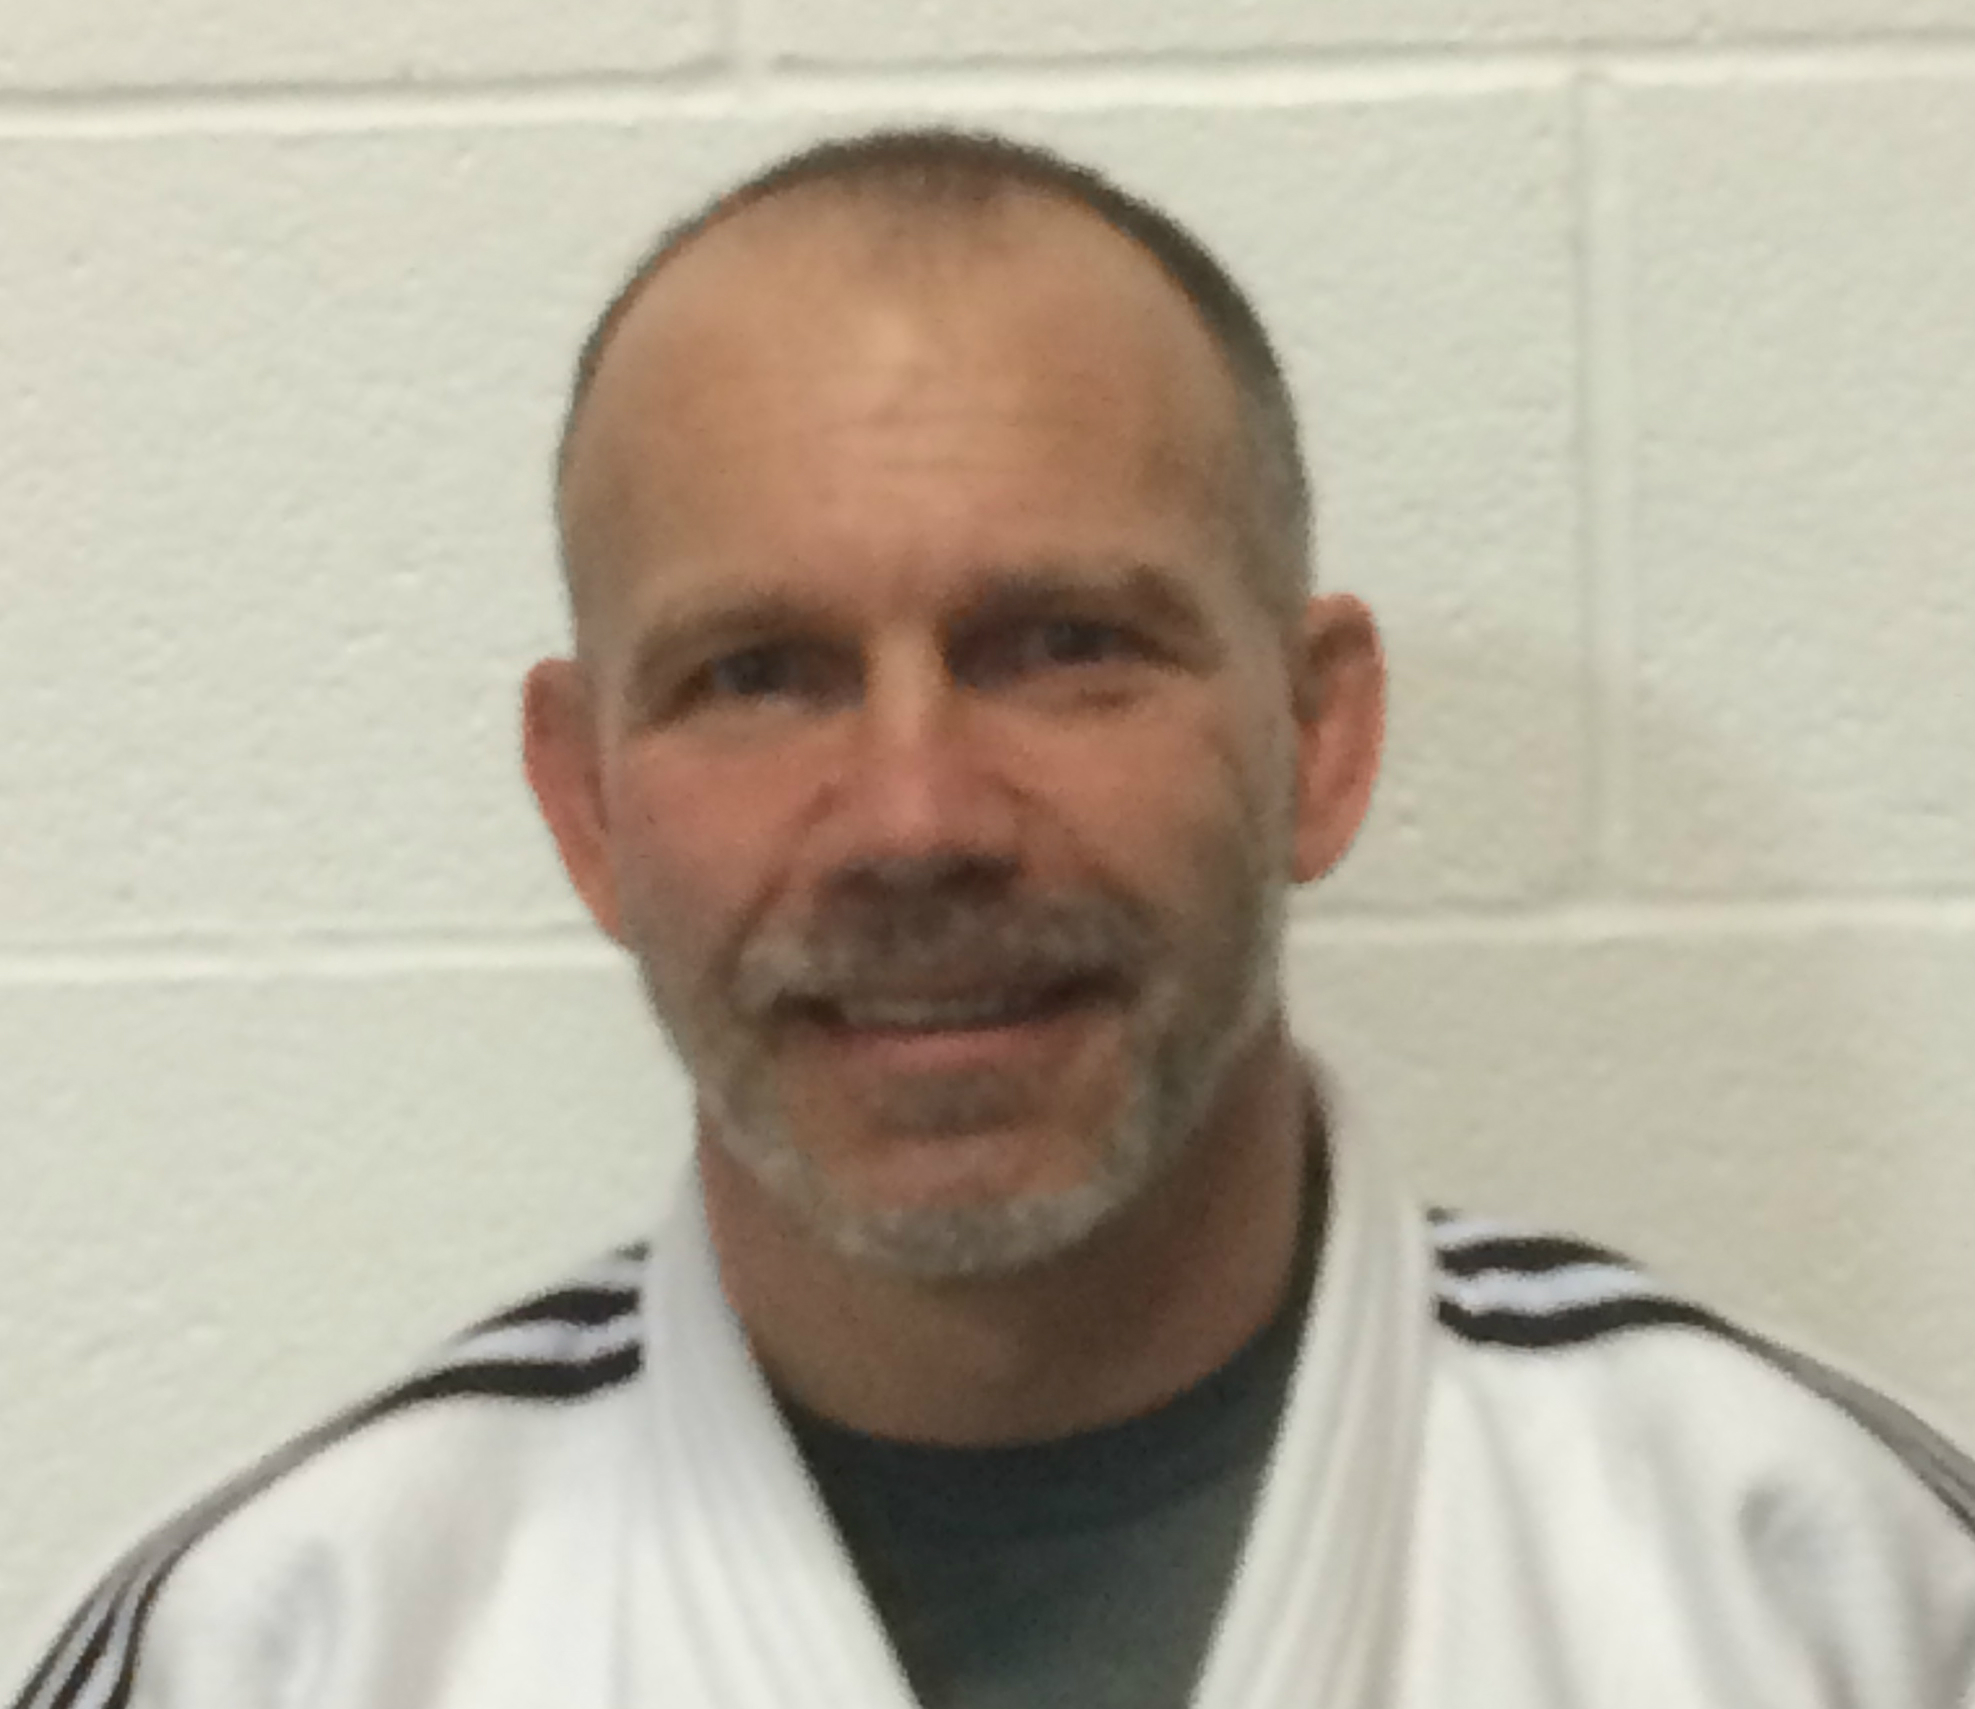 Samurai coach Mike wins his way to next black belt level